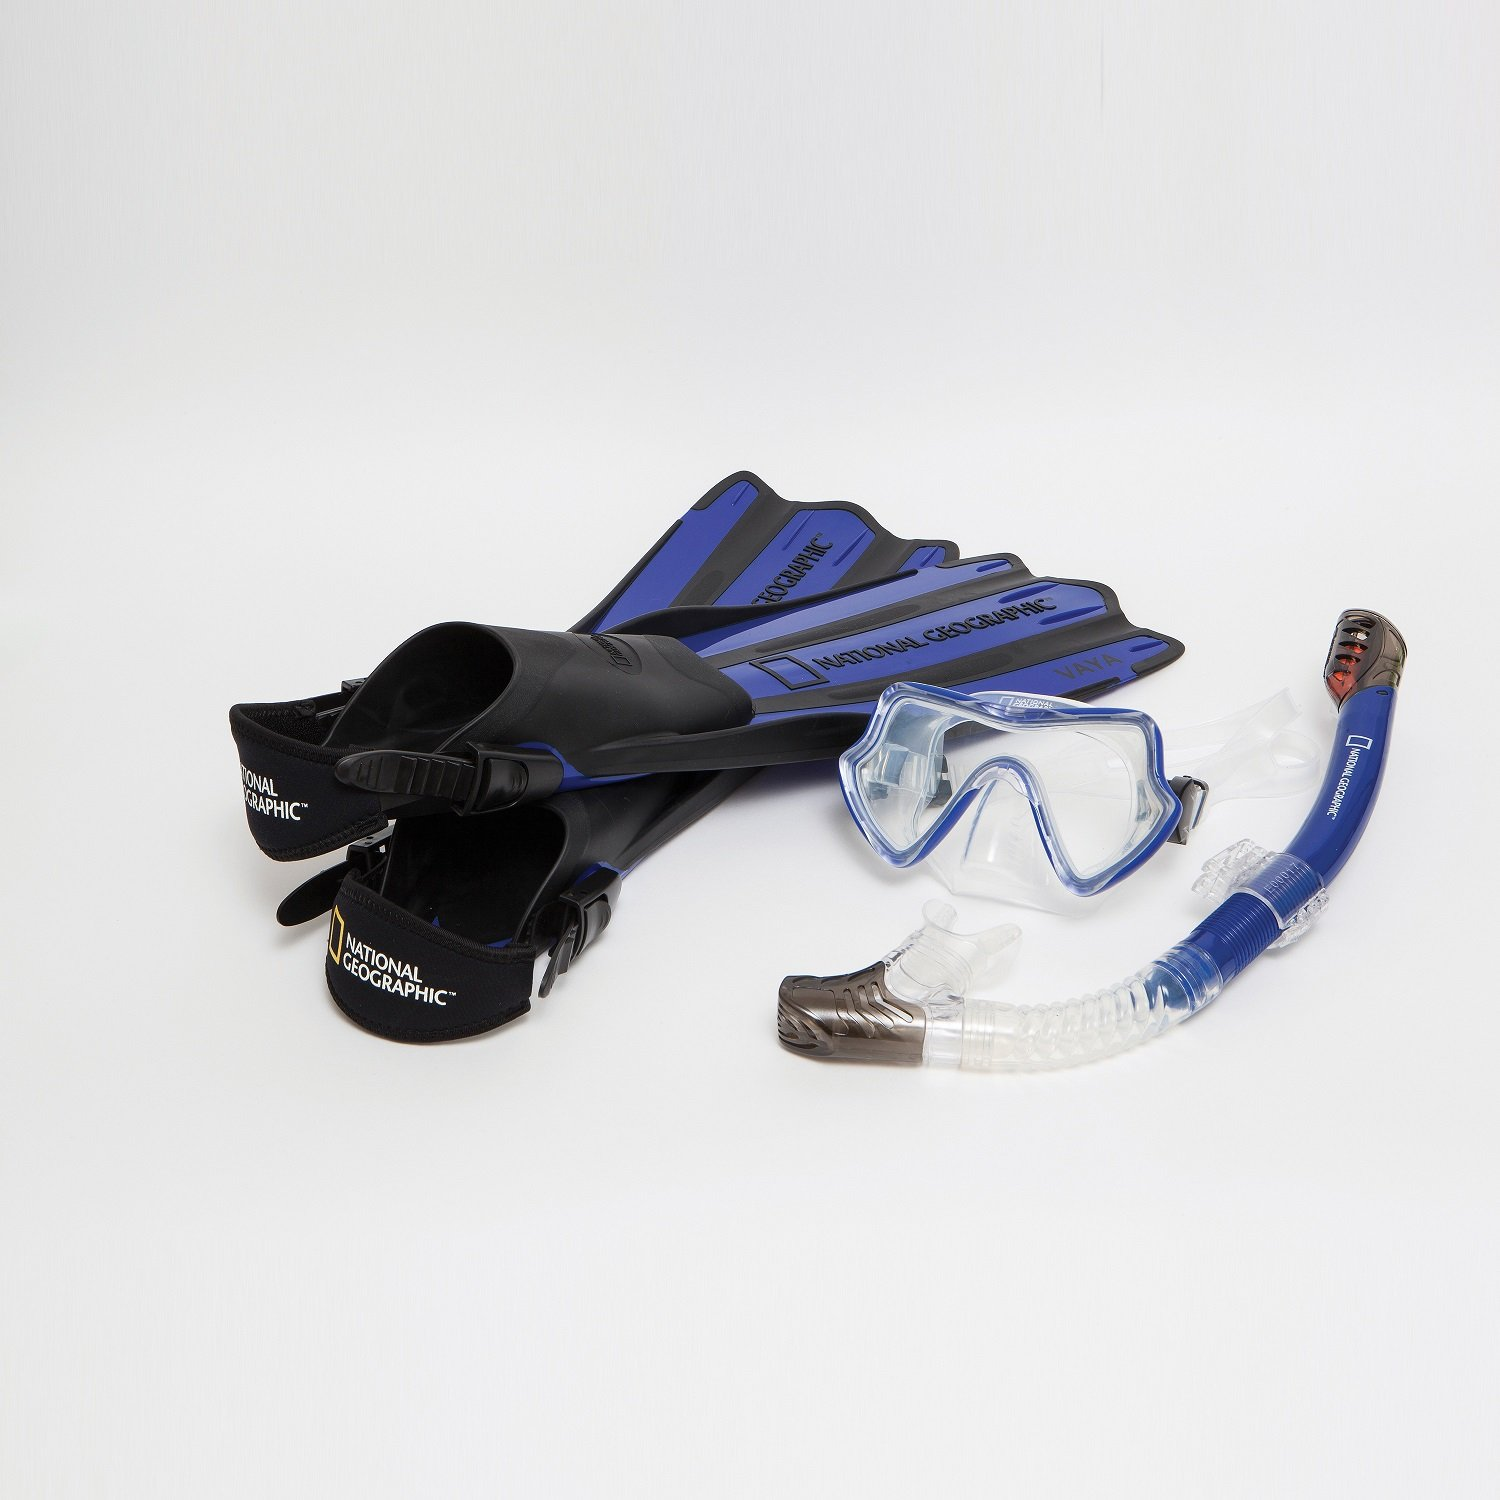 National Geographic Snorkeler Fin Set